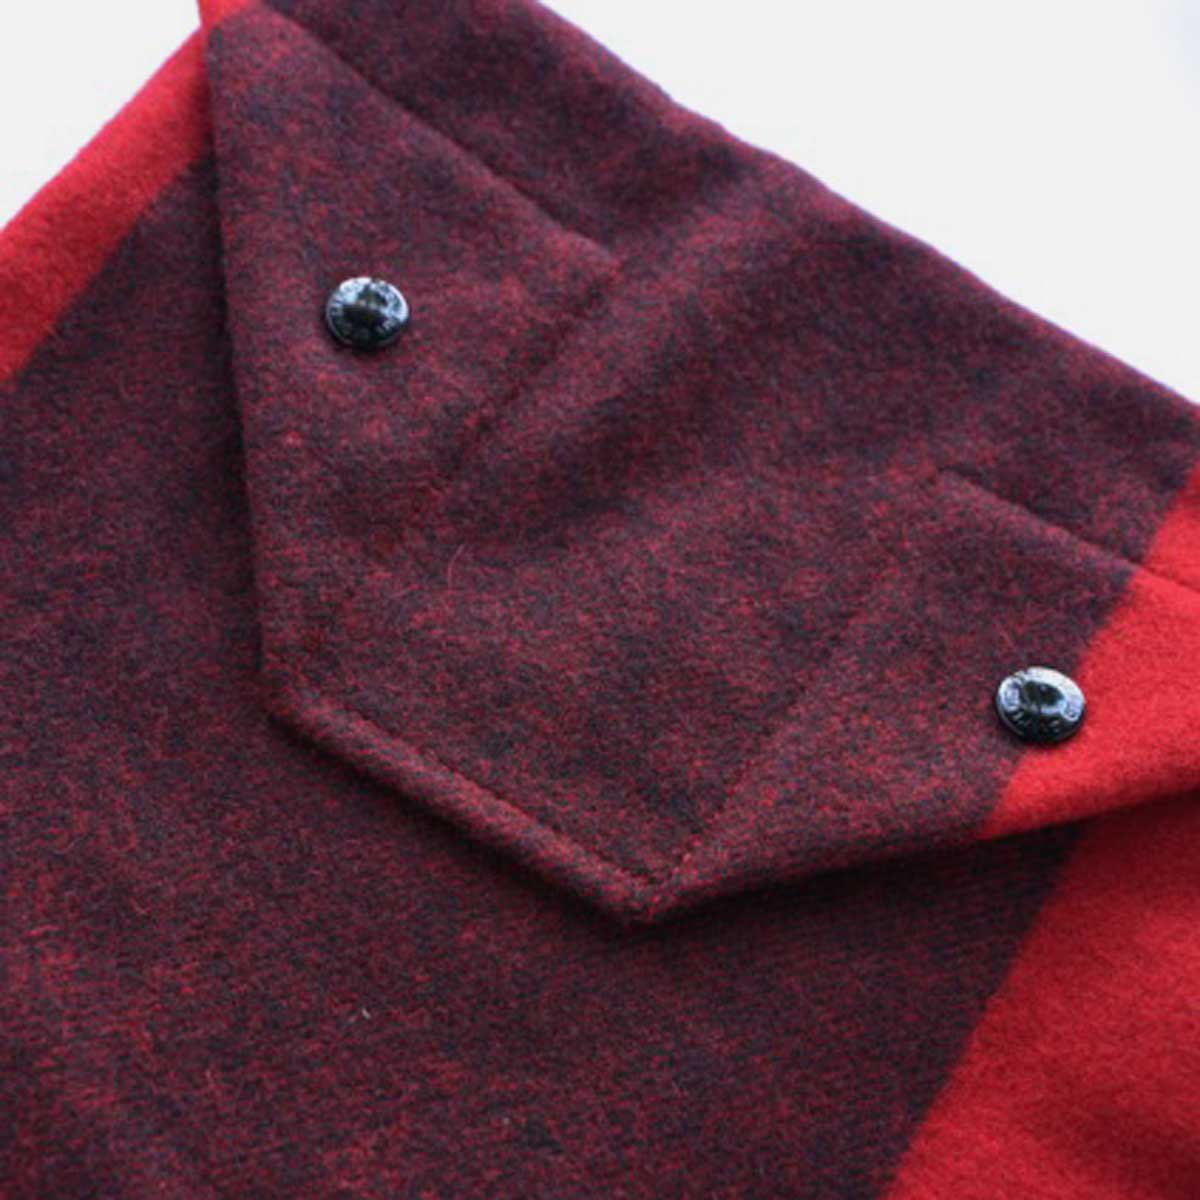 Engineered Garments Shoulder Pouch - Big Plaid Wool Melton  (Red)3